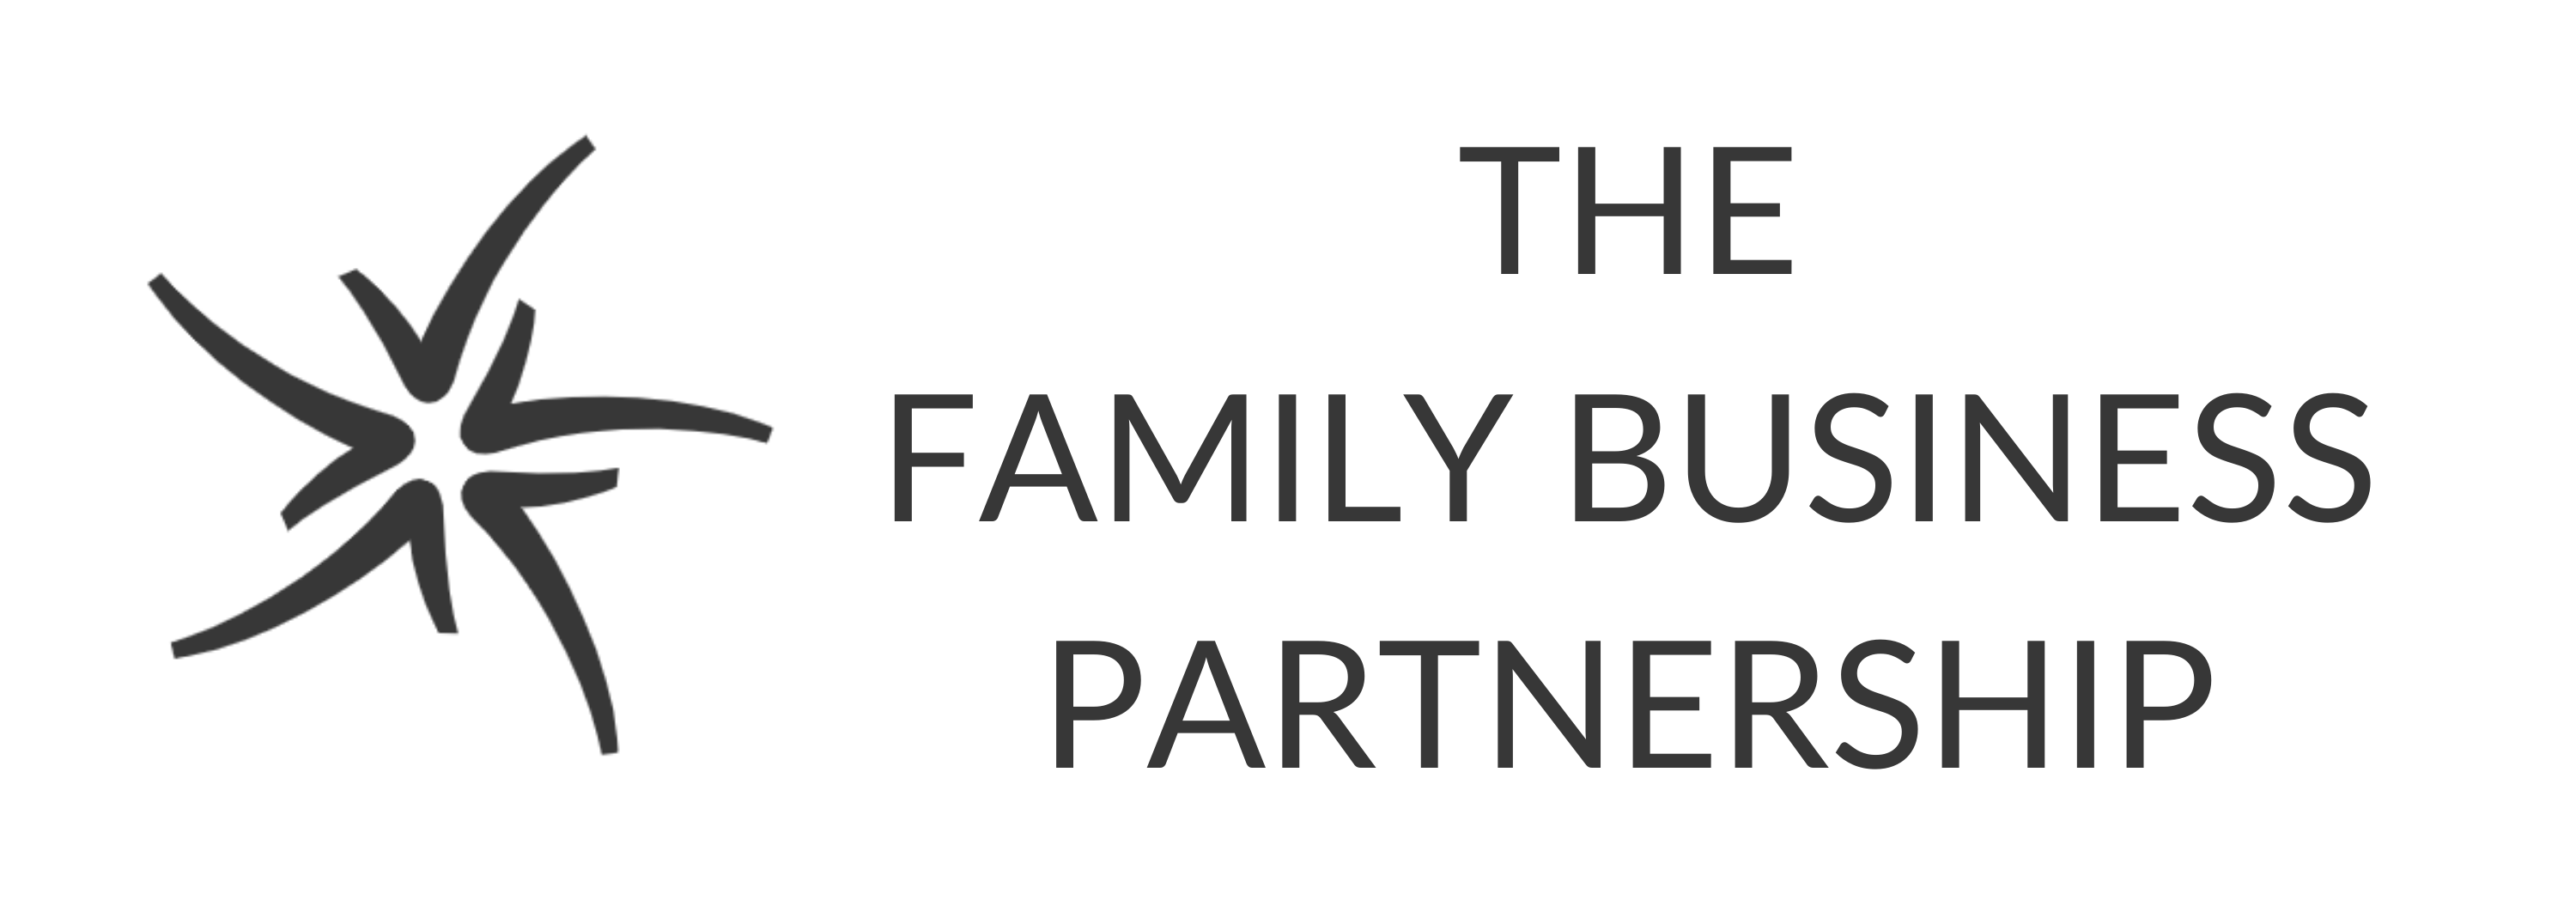 The Family Business Partnership